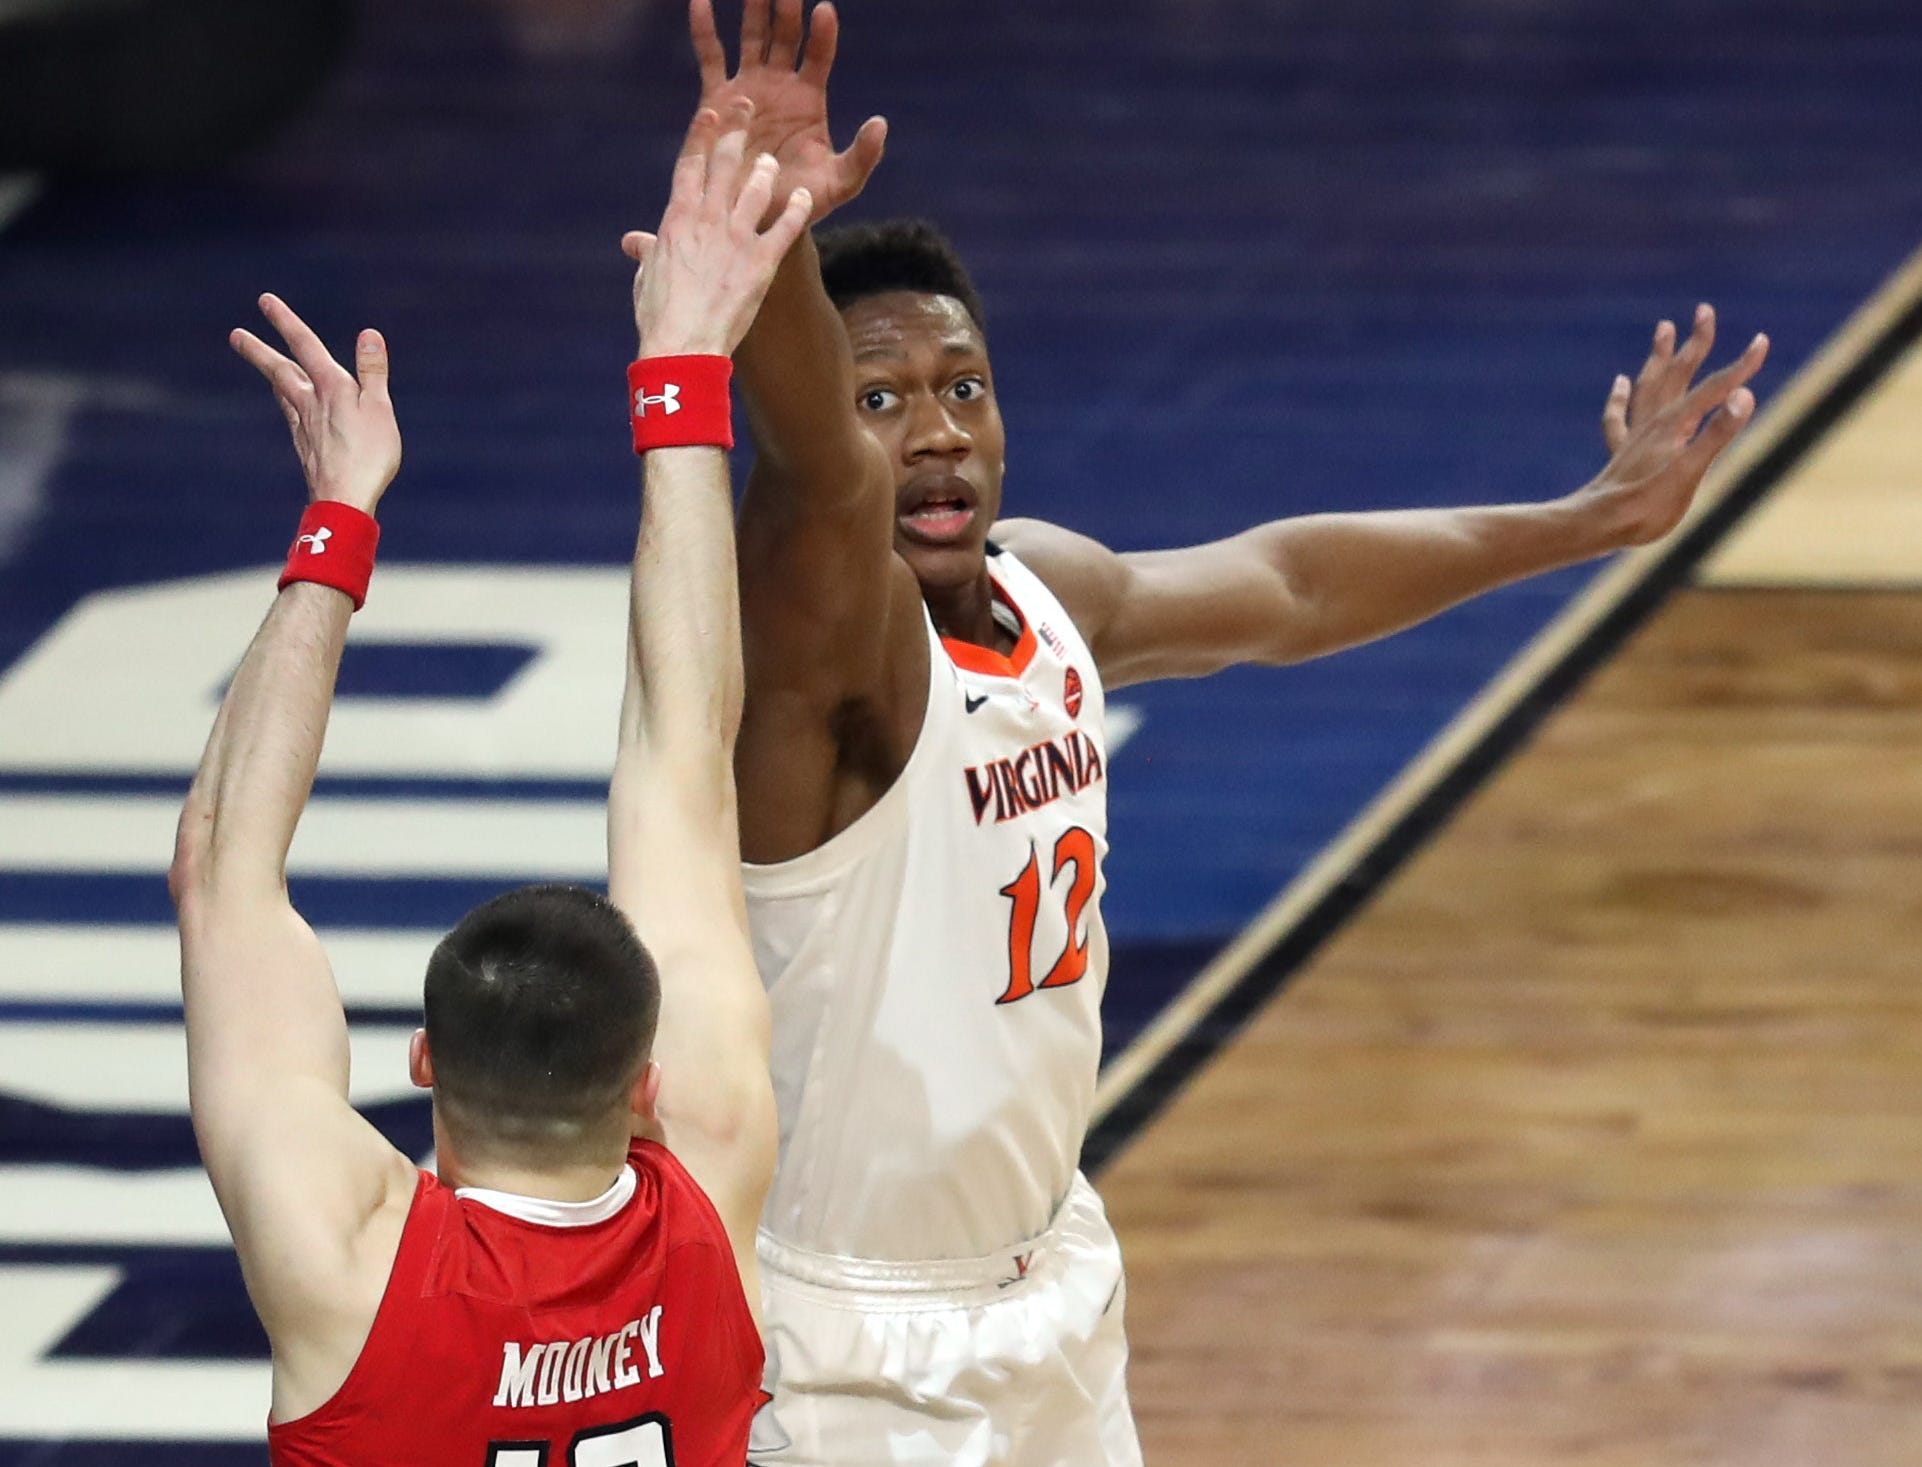 Apr 8, 2019; Minneapolis, MN, USA; Texas Tech Red Raiders guard Matt Mooney (13) shoots over Virginia Cavaliers guard De'Andre Hunter (12) during the first half in the championship game of the 2019 men's Final Four at US Bank Stadium. Mandatory Credit: Brace Hemmelgarn-USA TODAY Sports